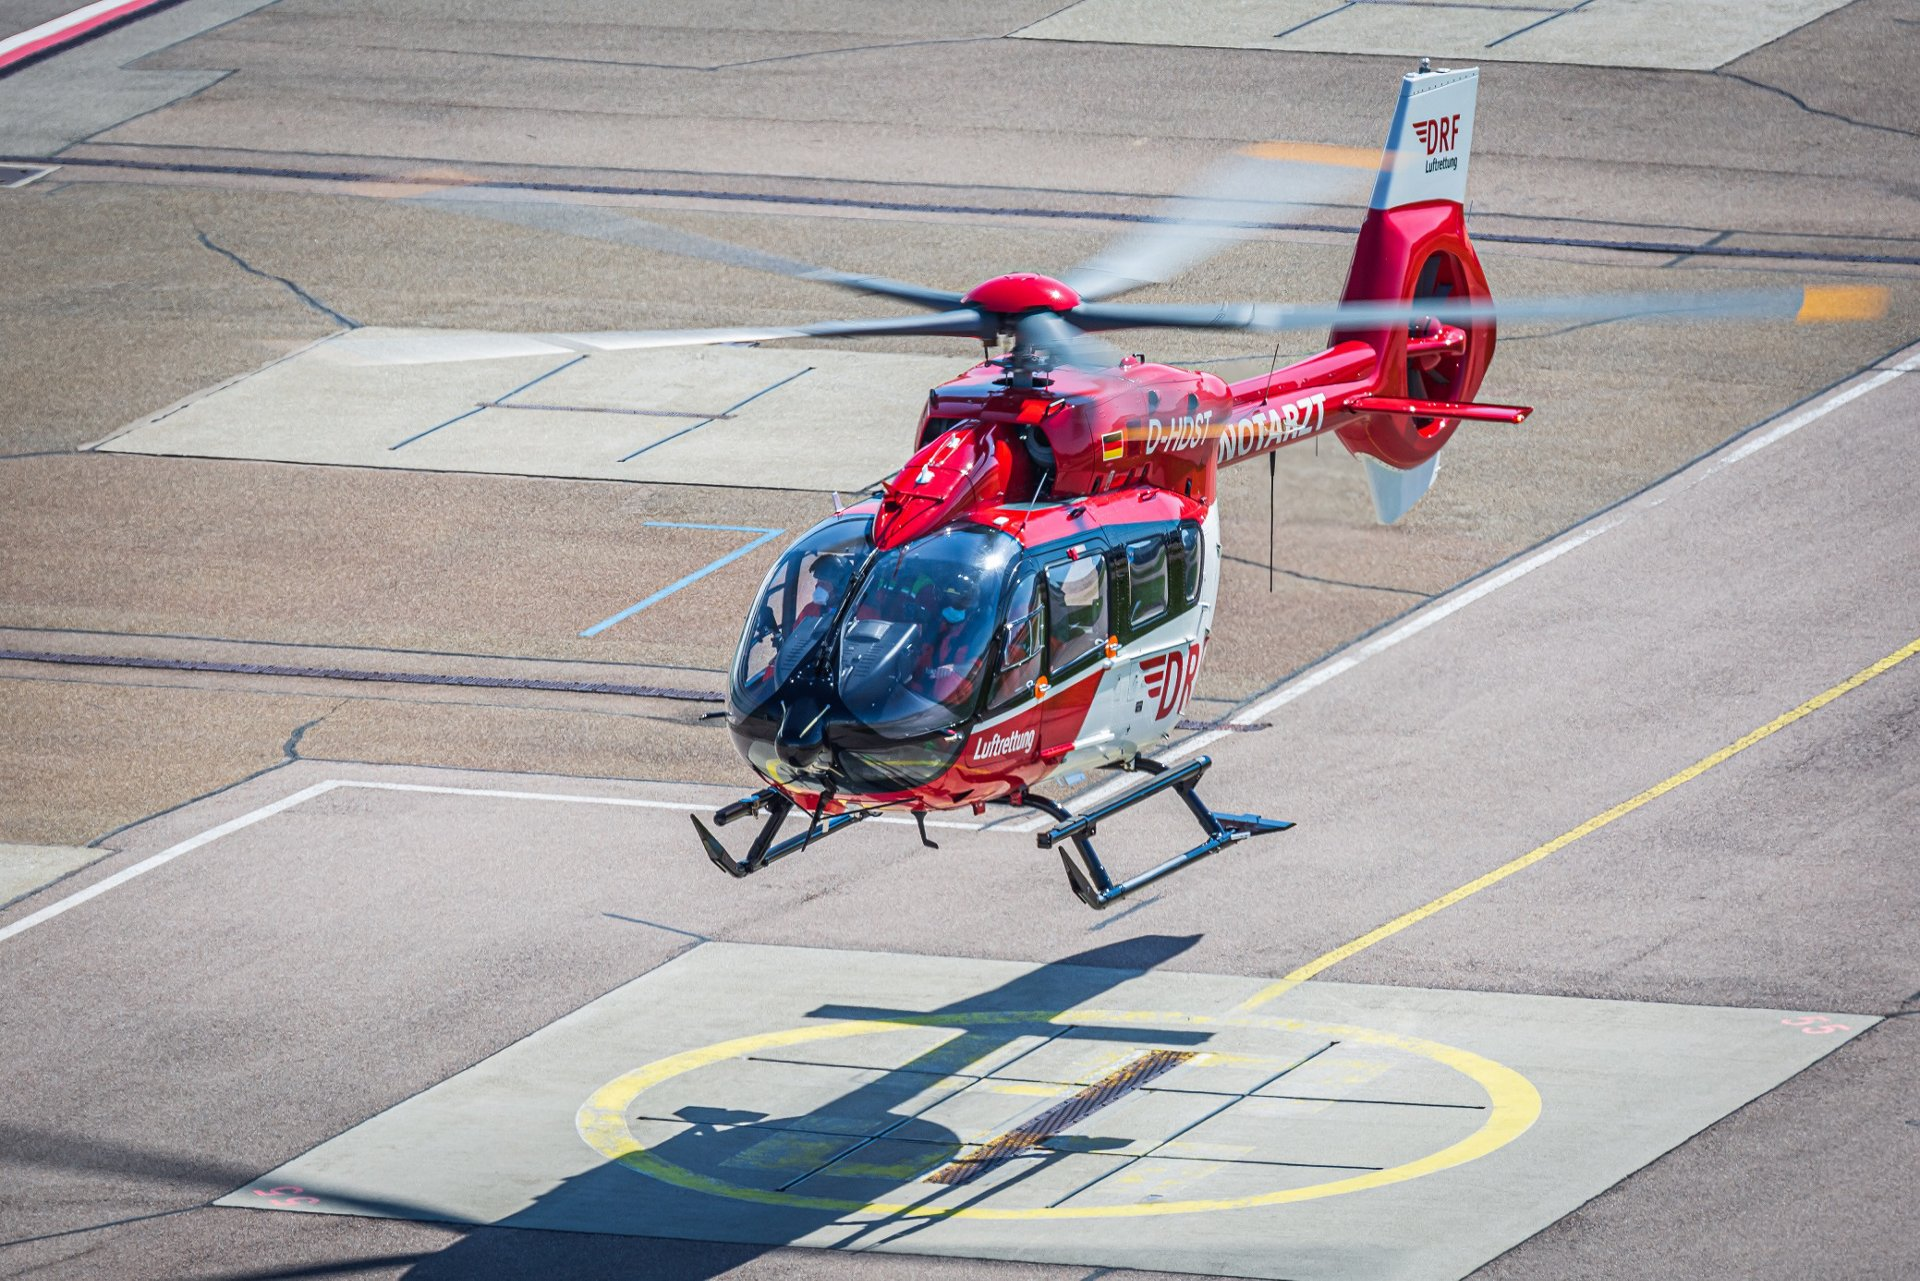 Airbus Helicopters, in cooperation with DRF Luftrettung, has performed the first retrofit of a four-bladed H145 into the new five-bladed version.